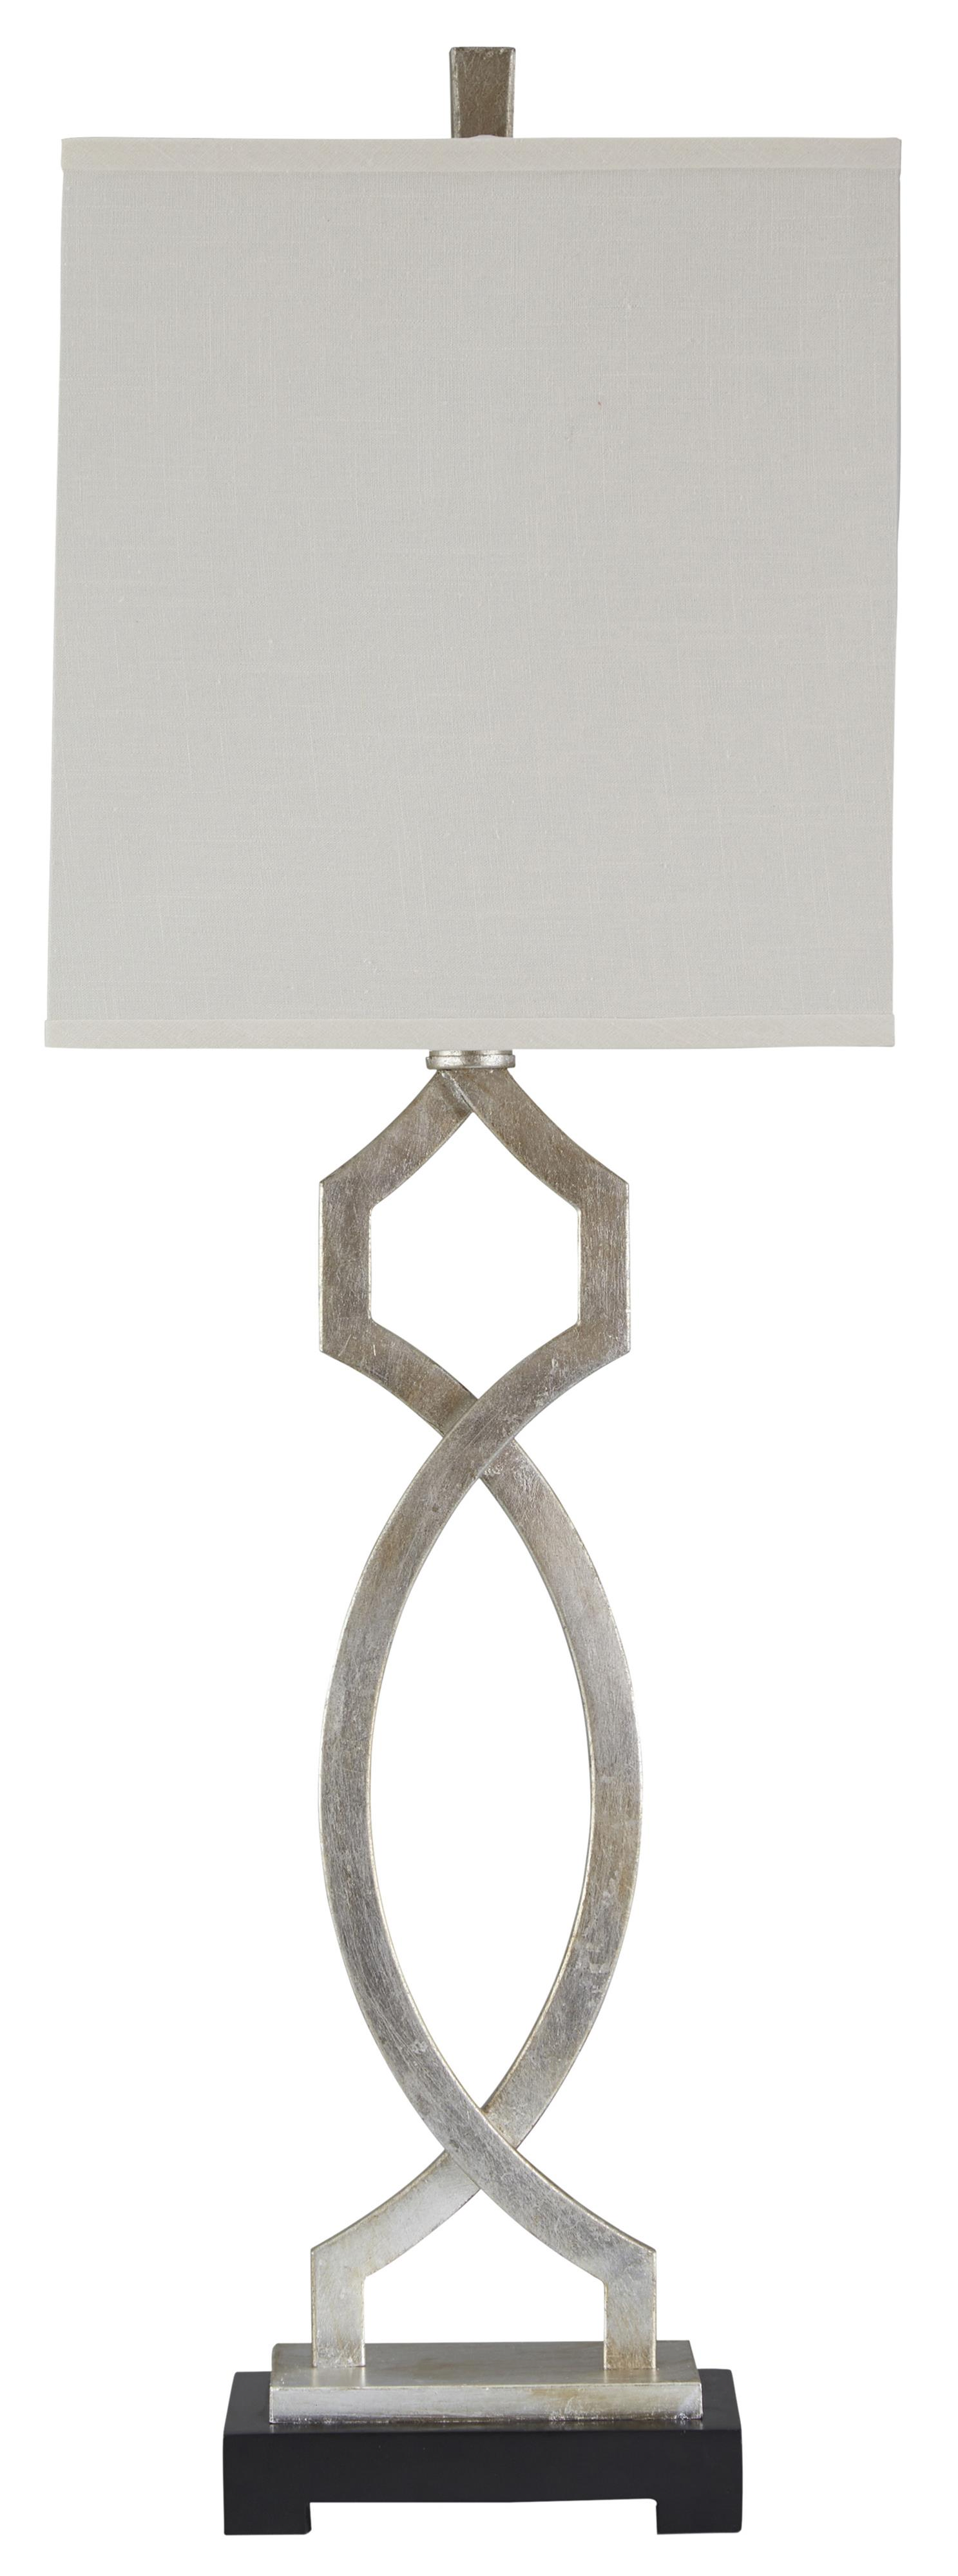 Signature Design by Ashley Lamps - Traditional Classics Taggert Metal Table Lamp - Item Number: L208004